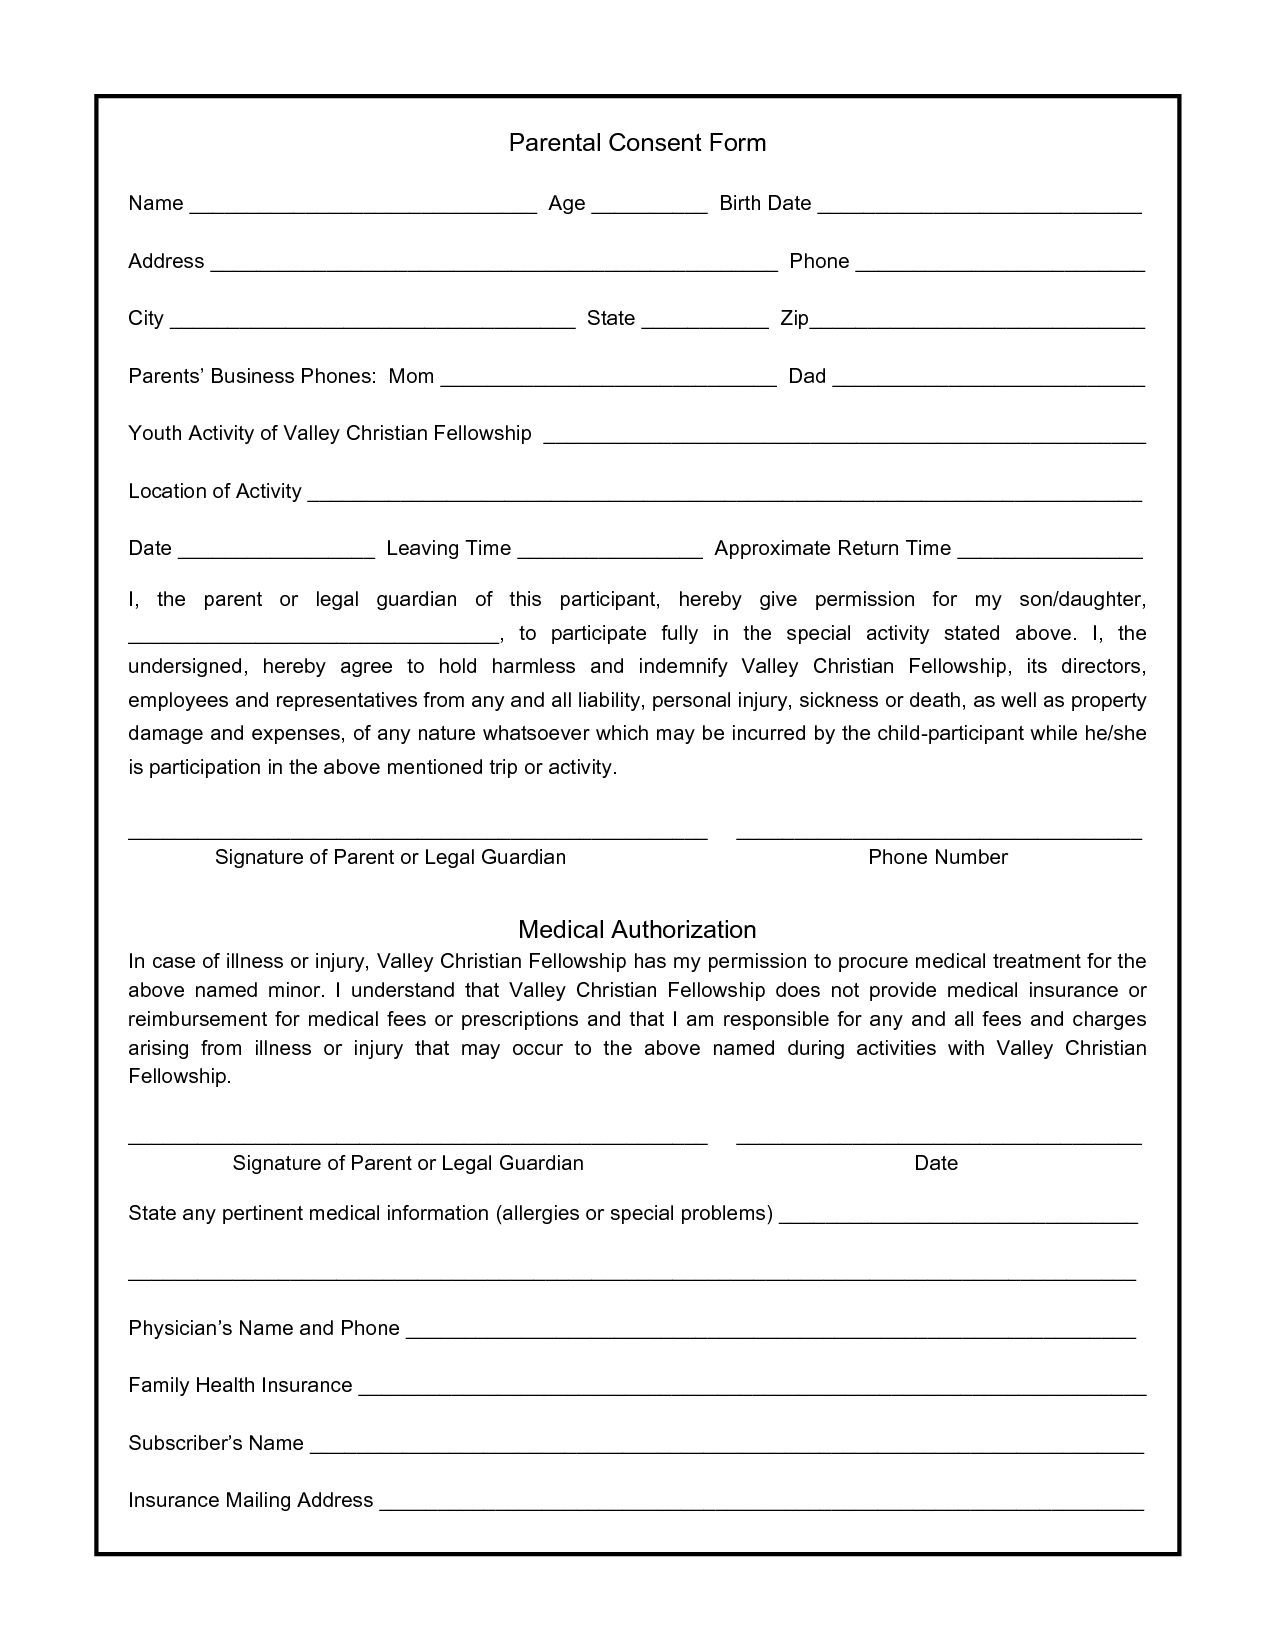 Parental Consent Form For Photos  SwifterCo  Parental Consent